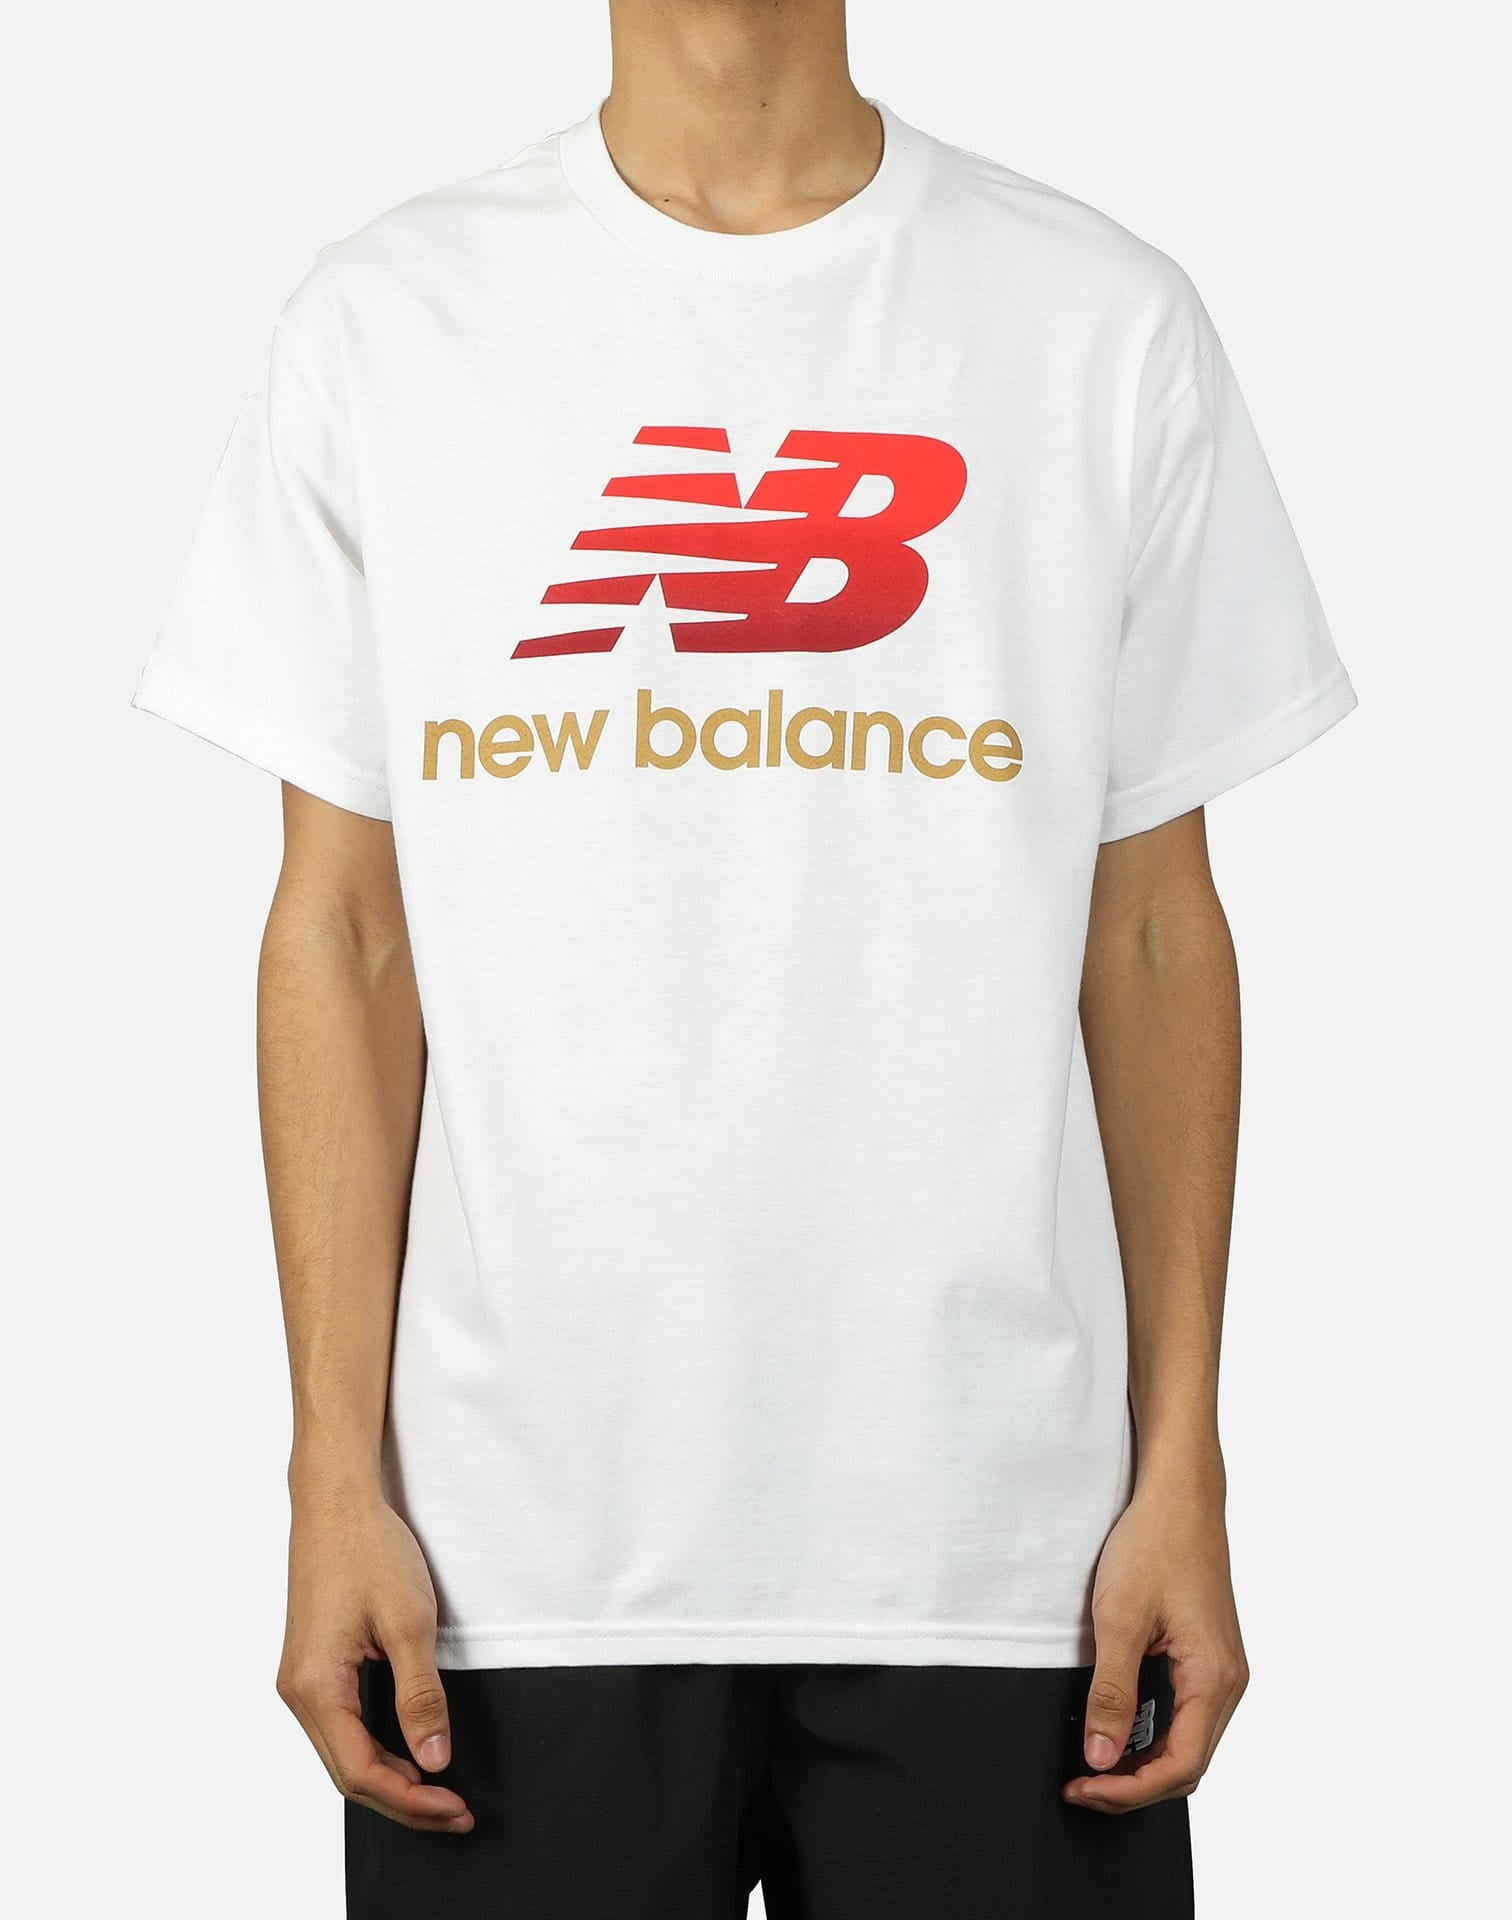 NewBalance NB ALTHETICS SPLIT STACK LOGO TEE